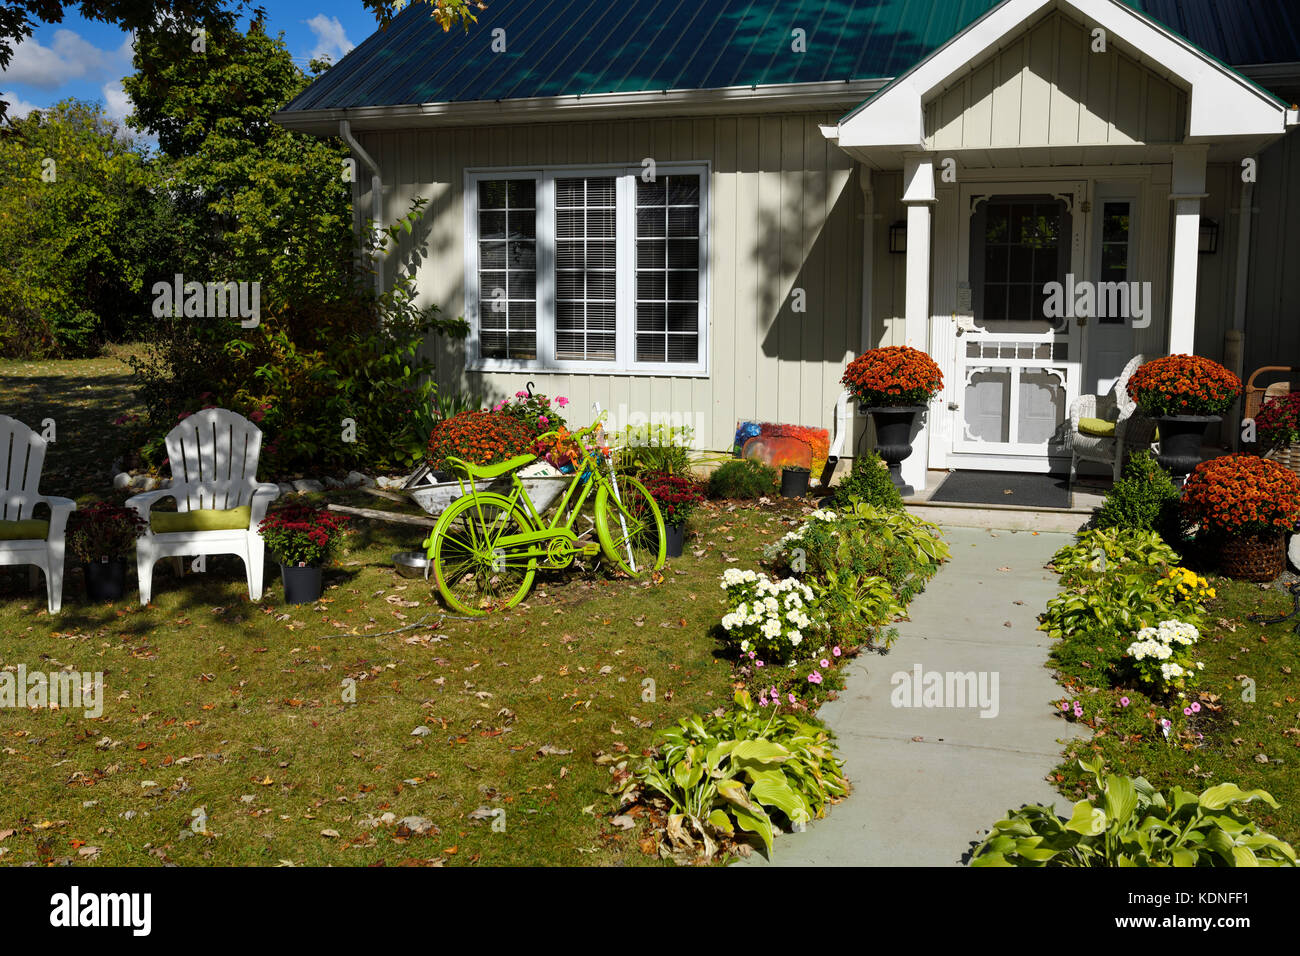 Colorful Fall front garden with green bicycle in Wellington, Prince Edward County Ontario Canada - Stock Image